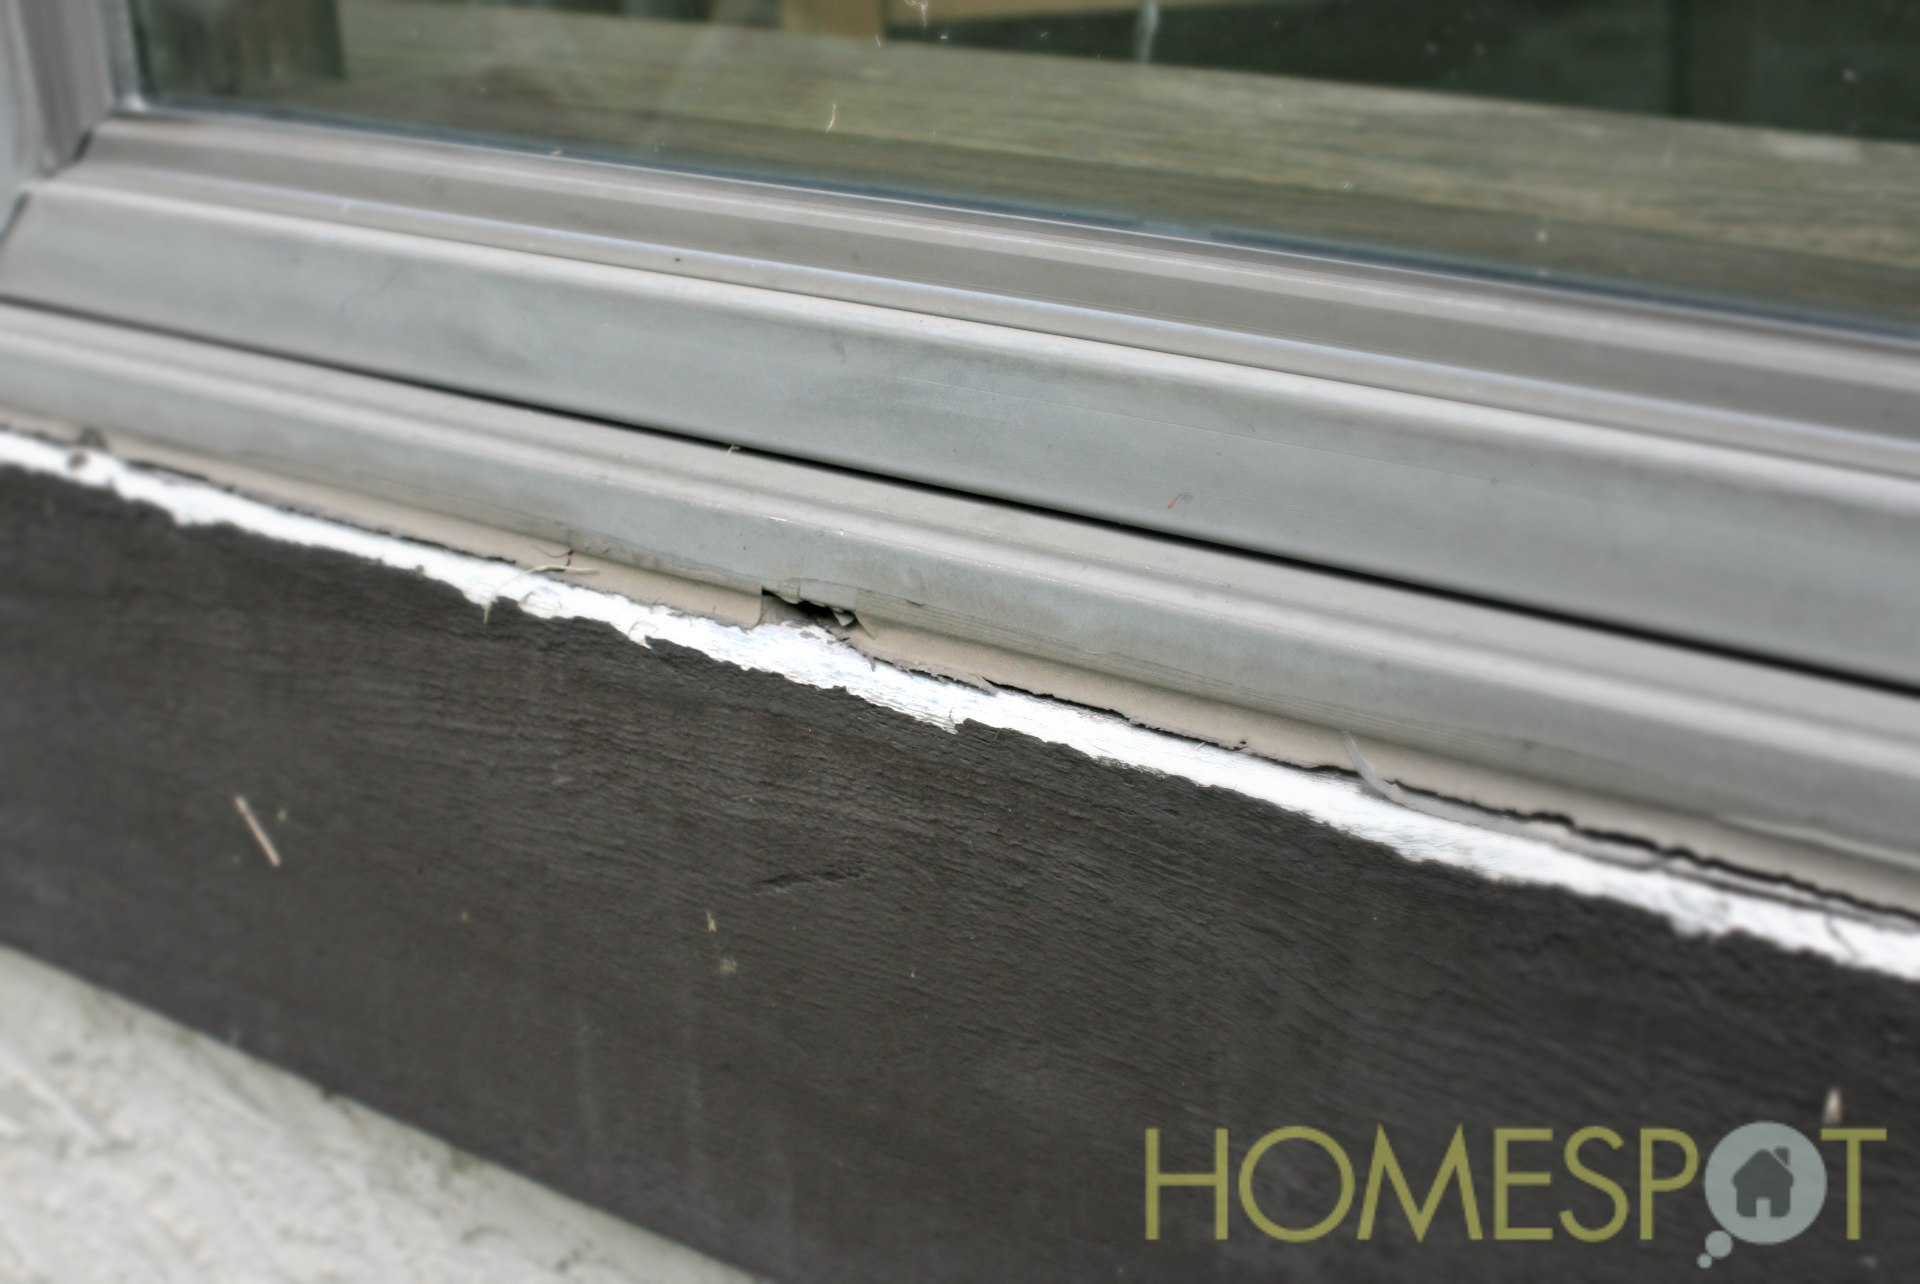 Inspect Exterior Seals Around The House Every Fall